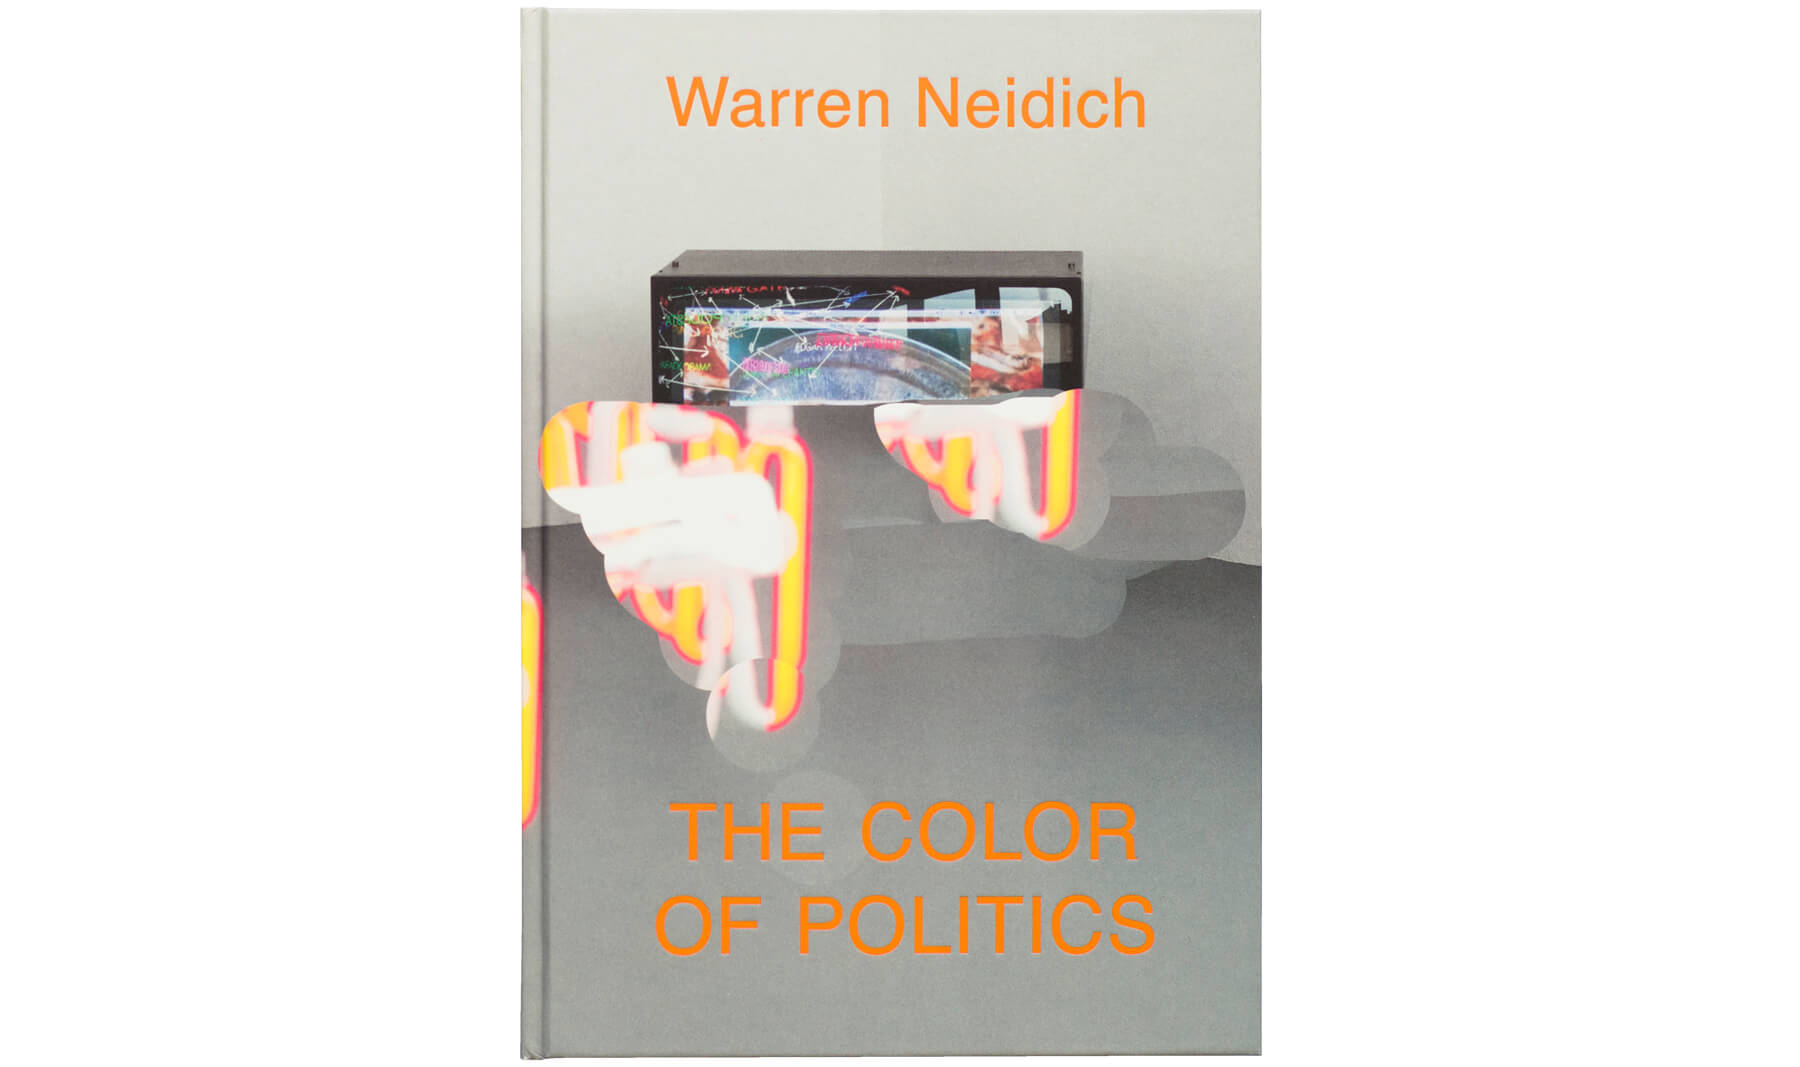 Product image of Warren Neidich: The Color of Politics